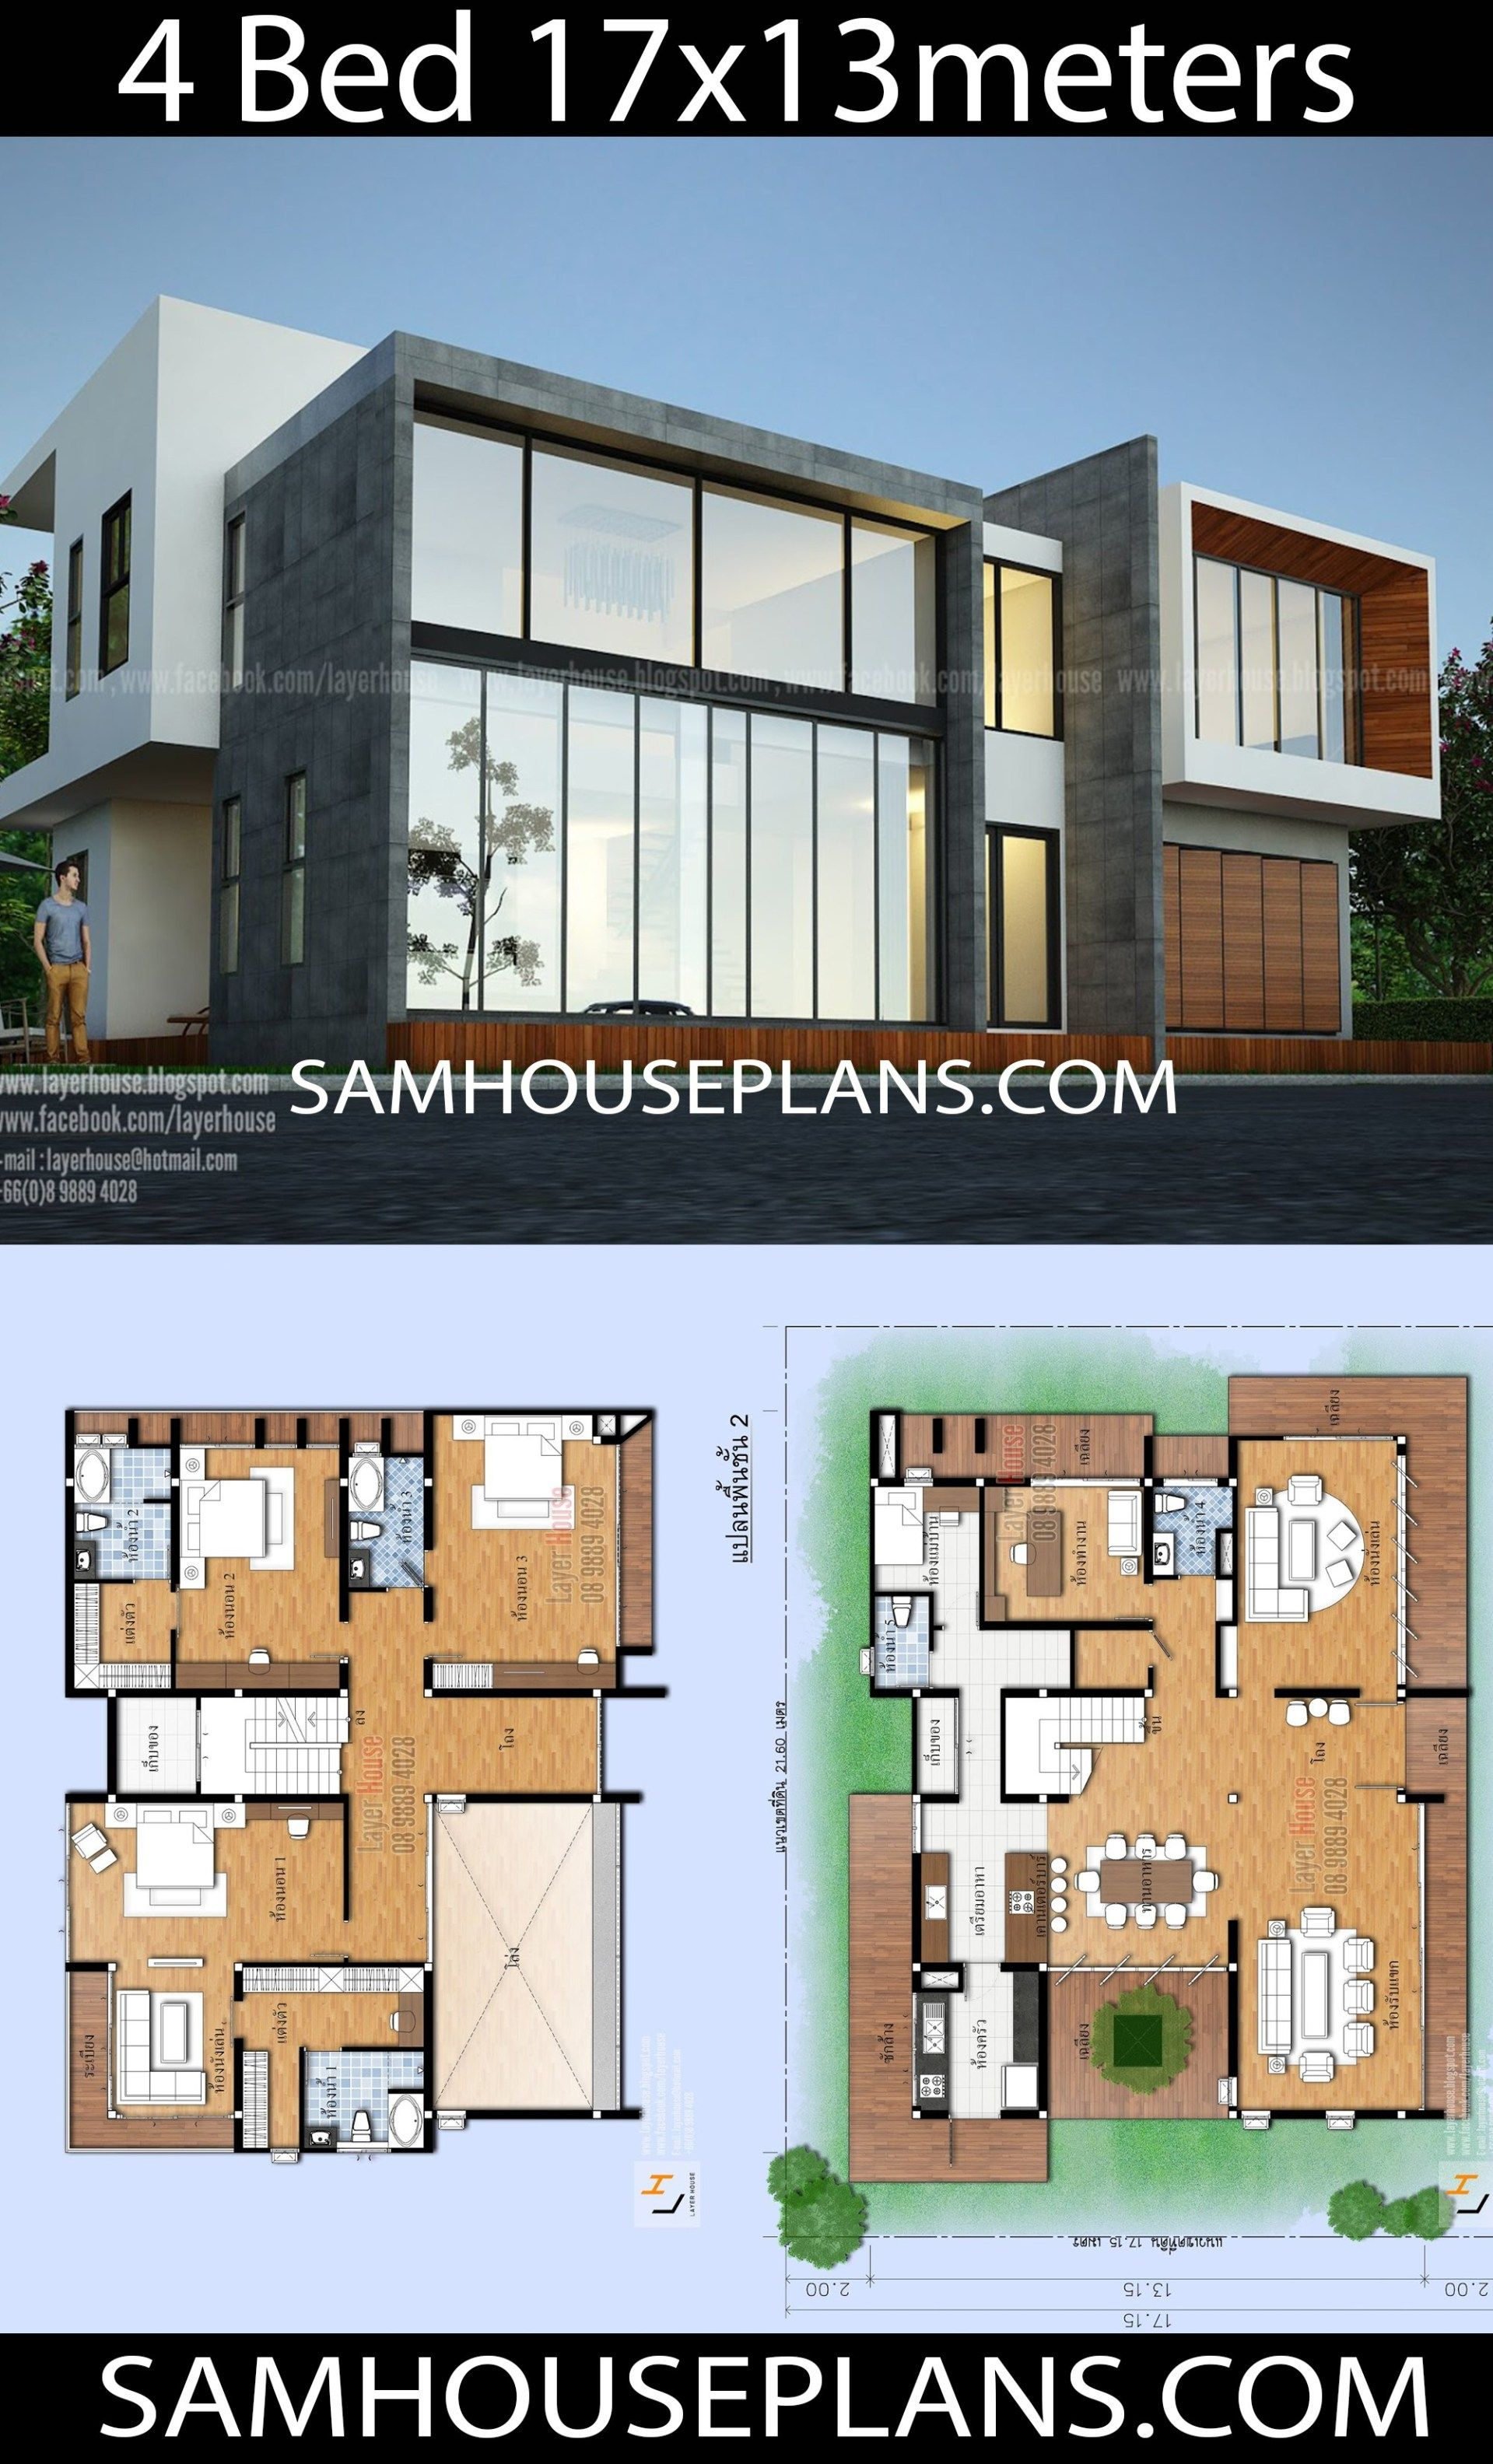 House Plans Idea 17x13m With 4 Bedrooms Sam House Plans House Plans Dream House Plans Architecture House